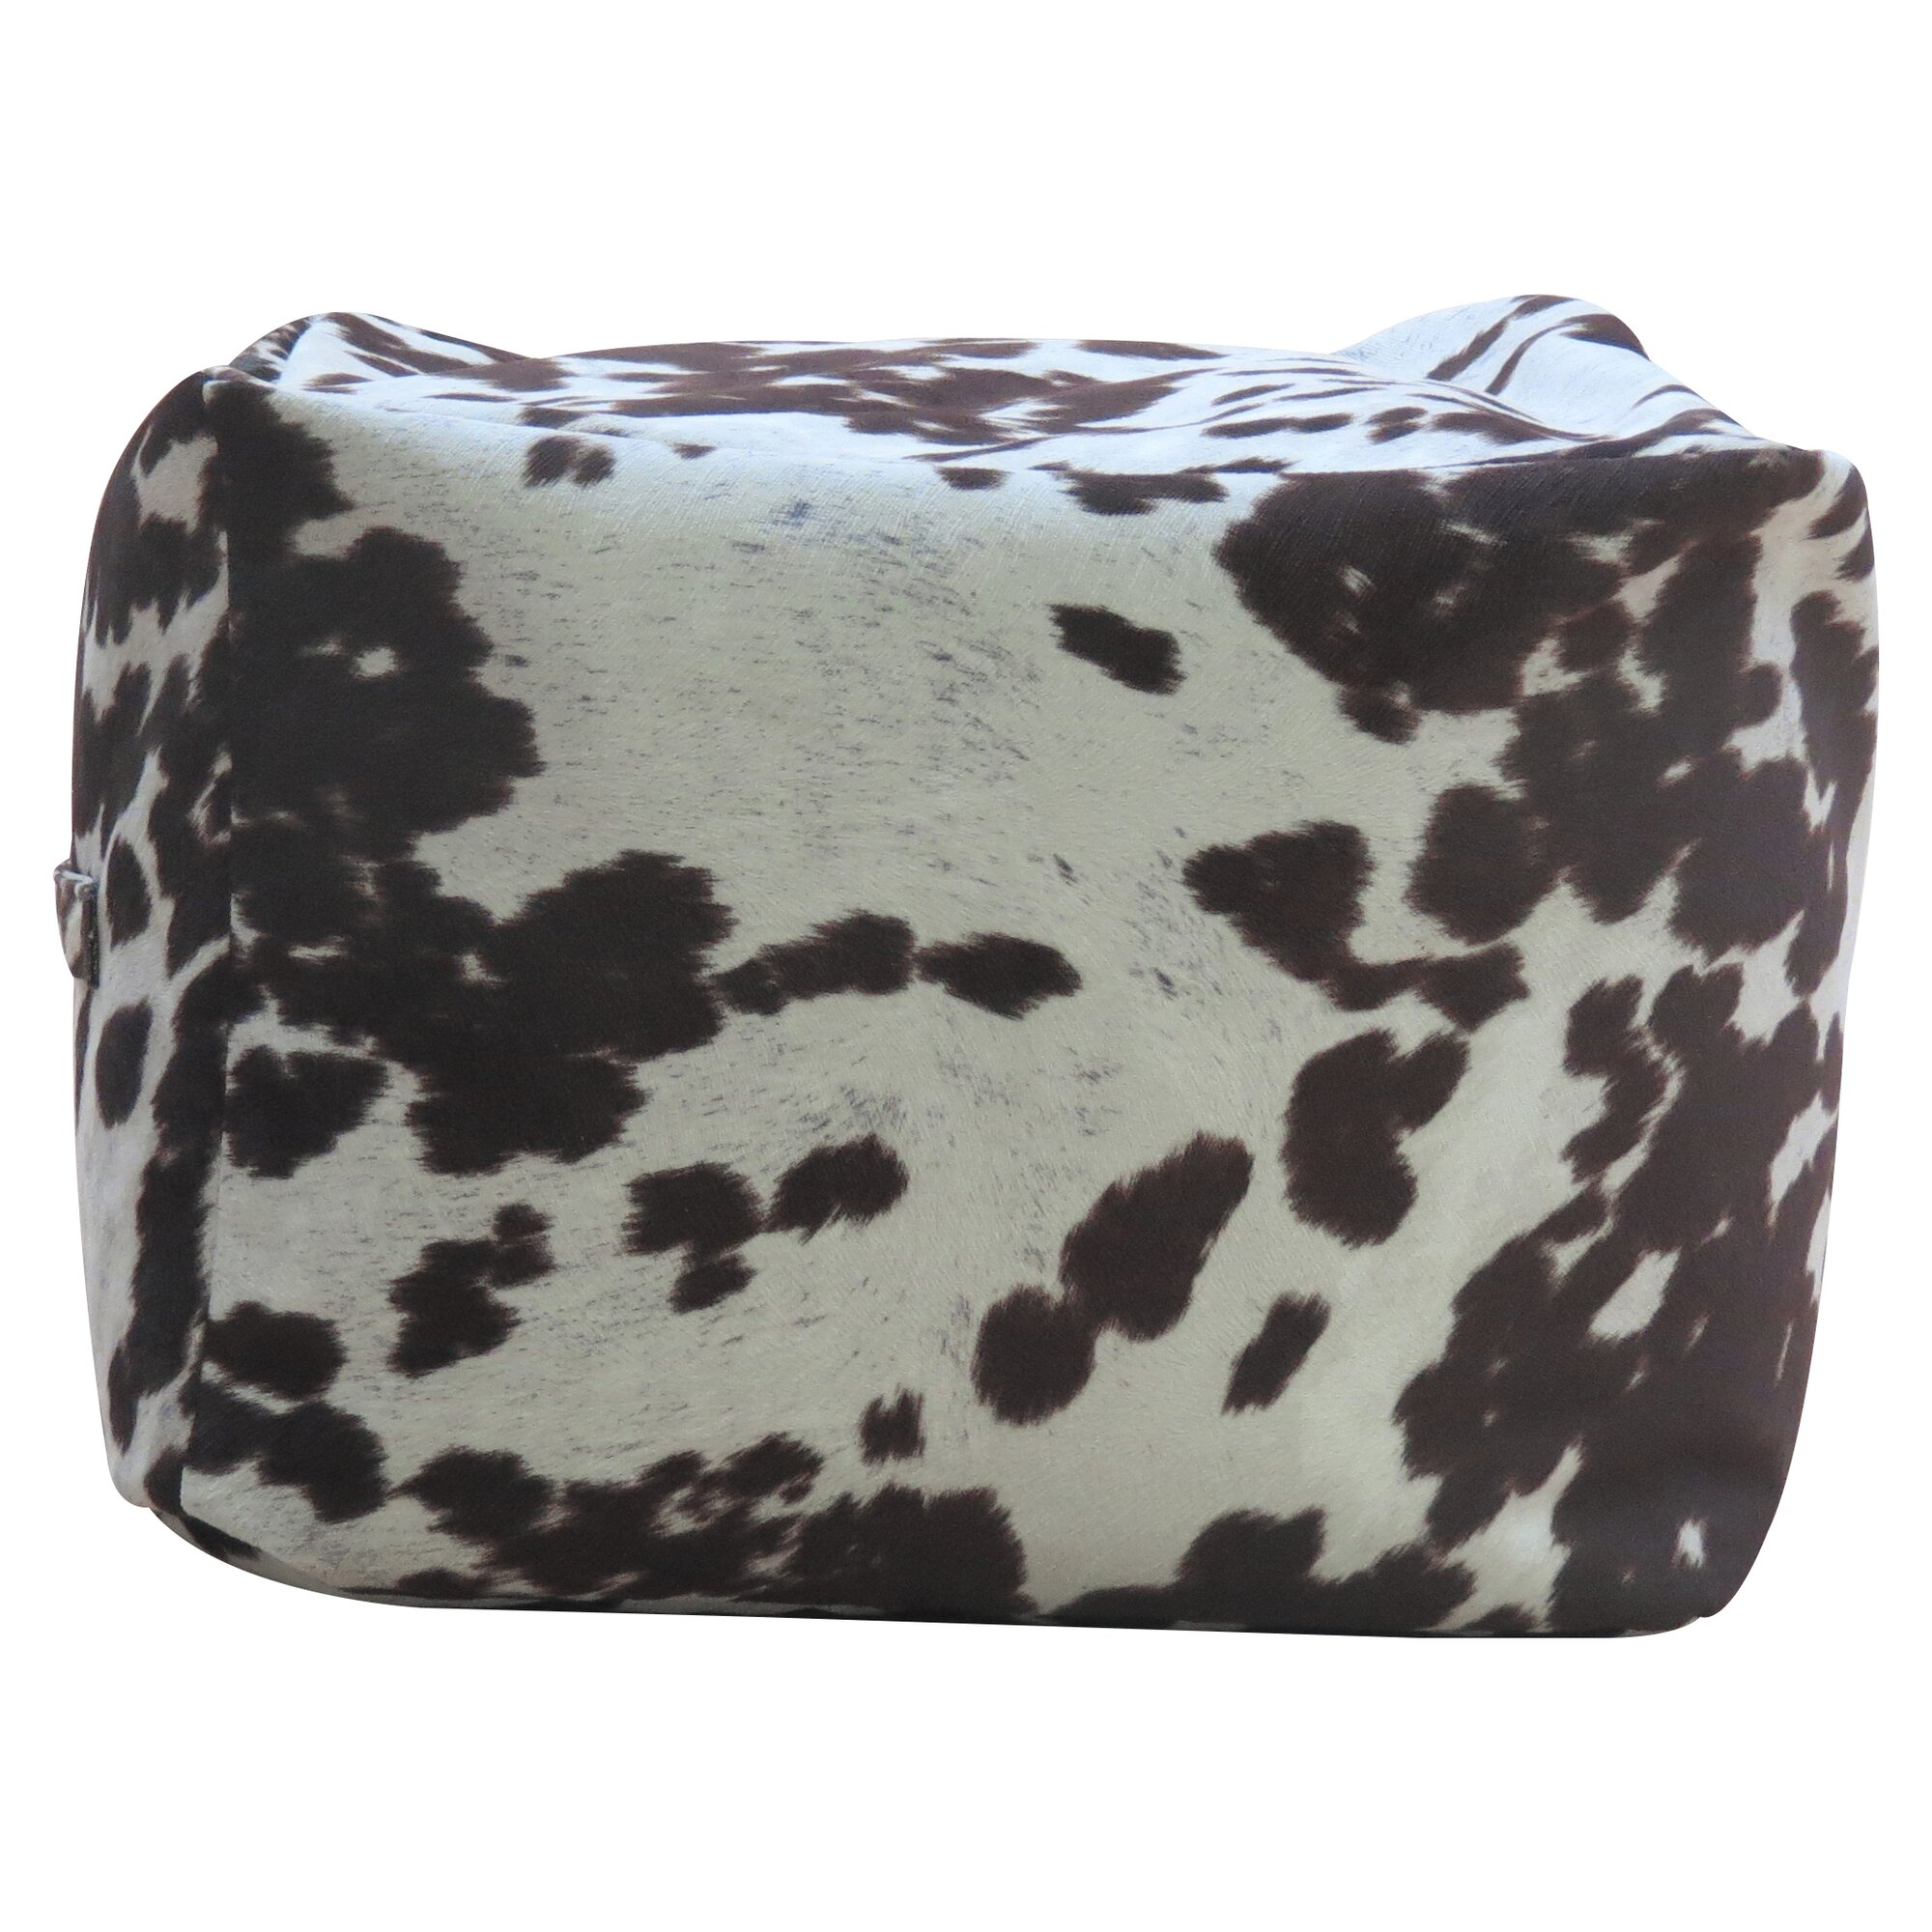 Fox Hill Trading Premiere Home Cowhide Pouf Footstool